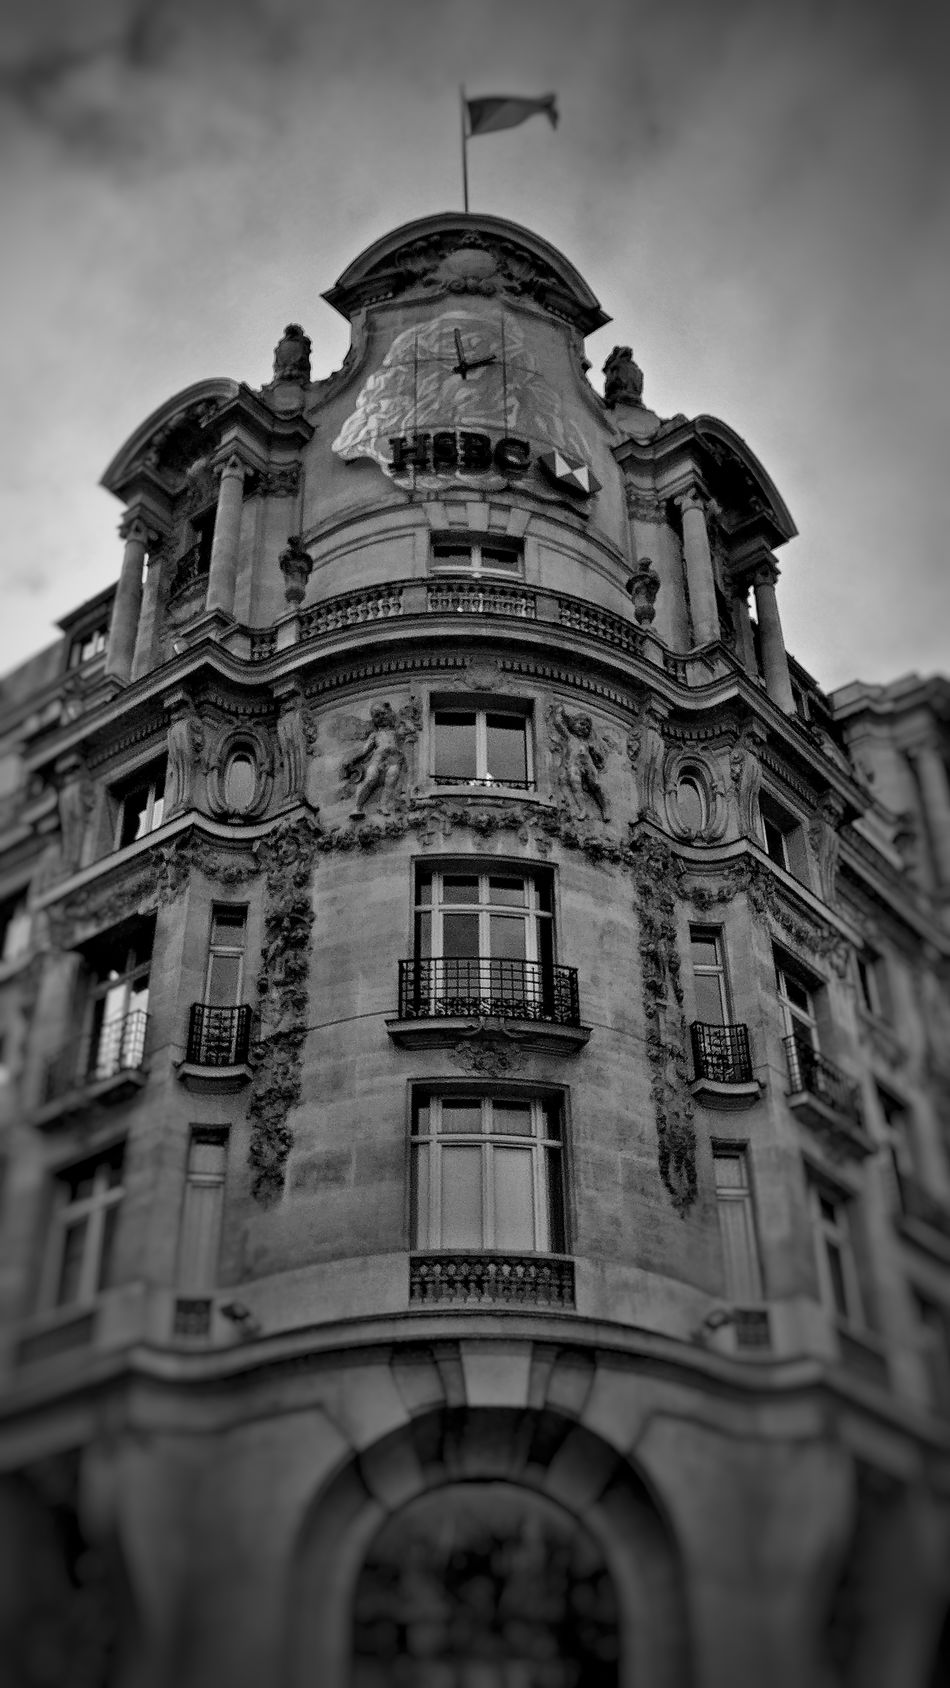 Architecture Building Exterior Built Structure City Low Angle View Travel Travel Destinations Sky Outdoors History No People Day Place Of Worship Paris Architecture Snapseed Oneplus3 OneplusShot France 🇫🇷 PhonePhotography AndroidPhotography Plus Belle Avenue Du Monde Champselysées Low Angle View